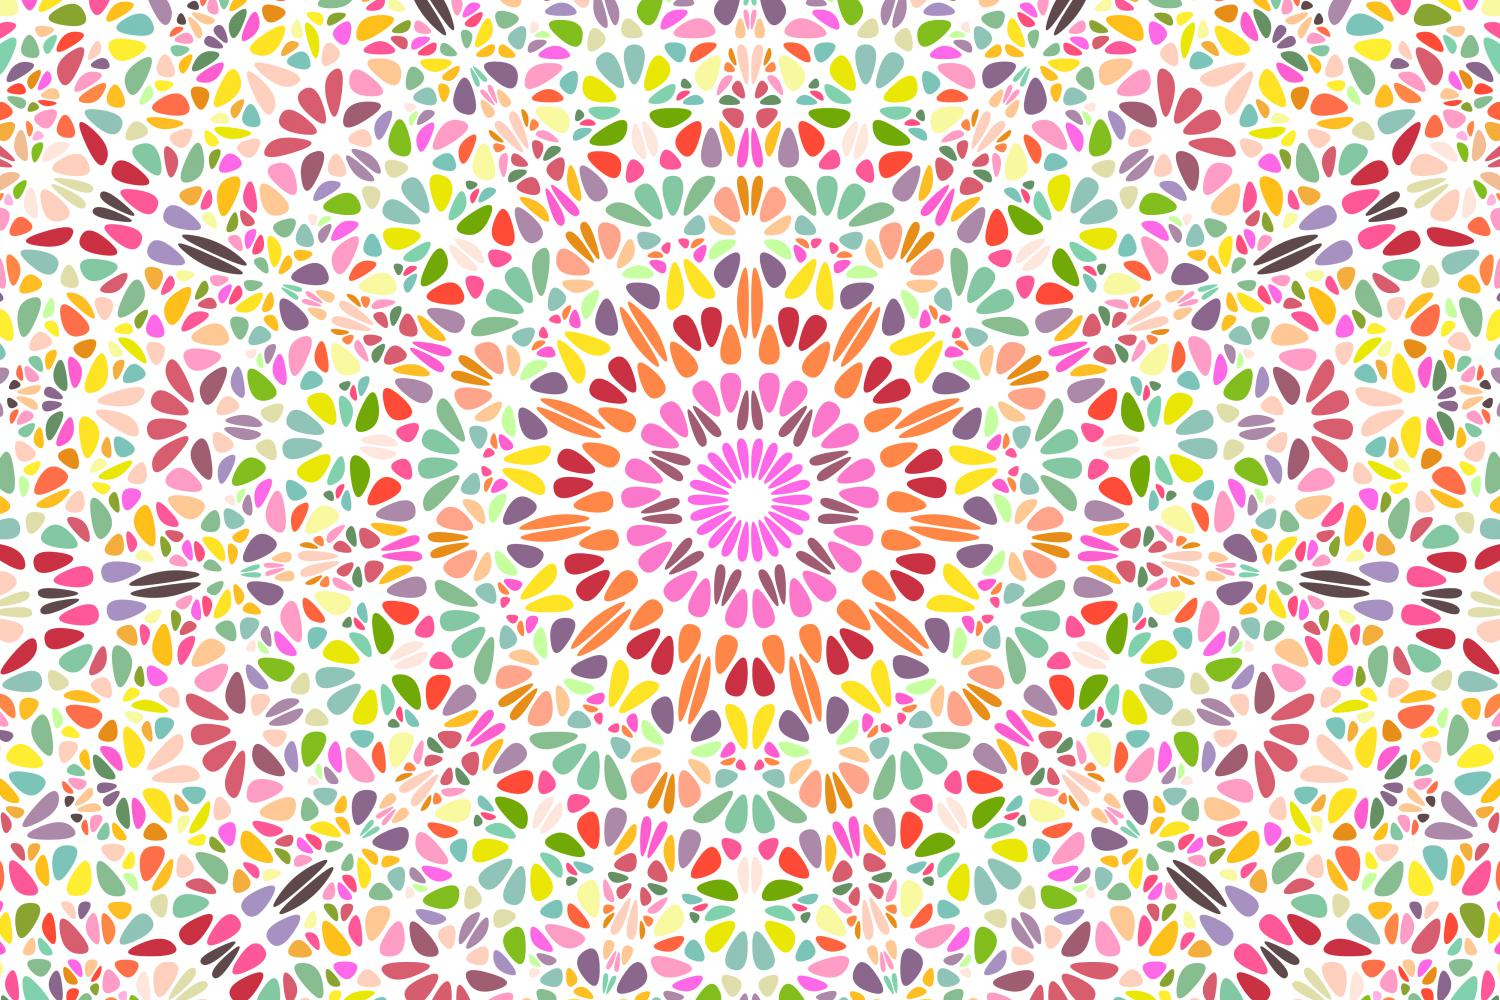 48 Floral Mandala Backgrounds example image 2